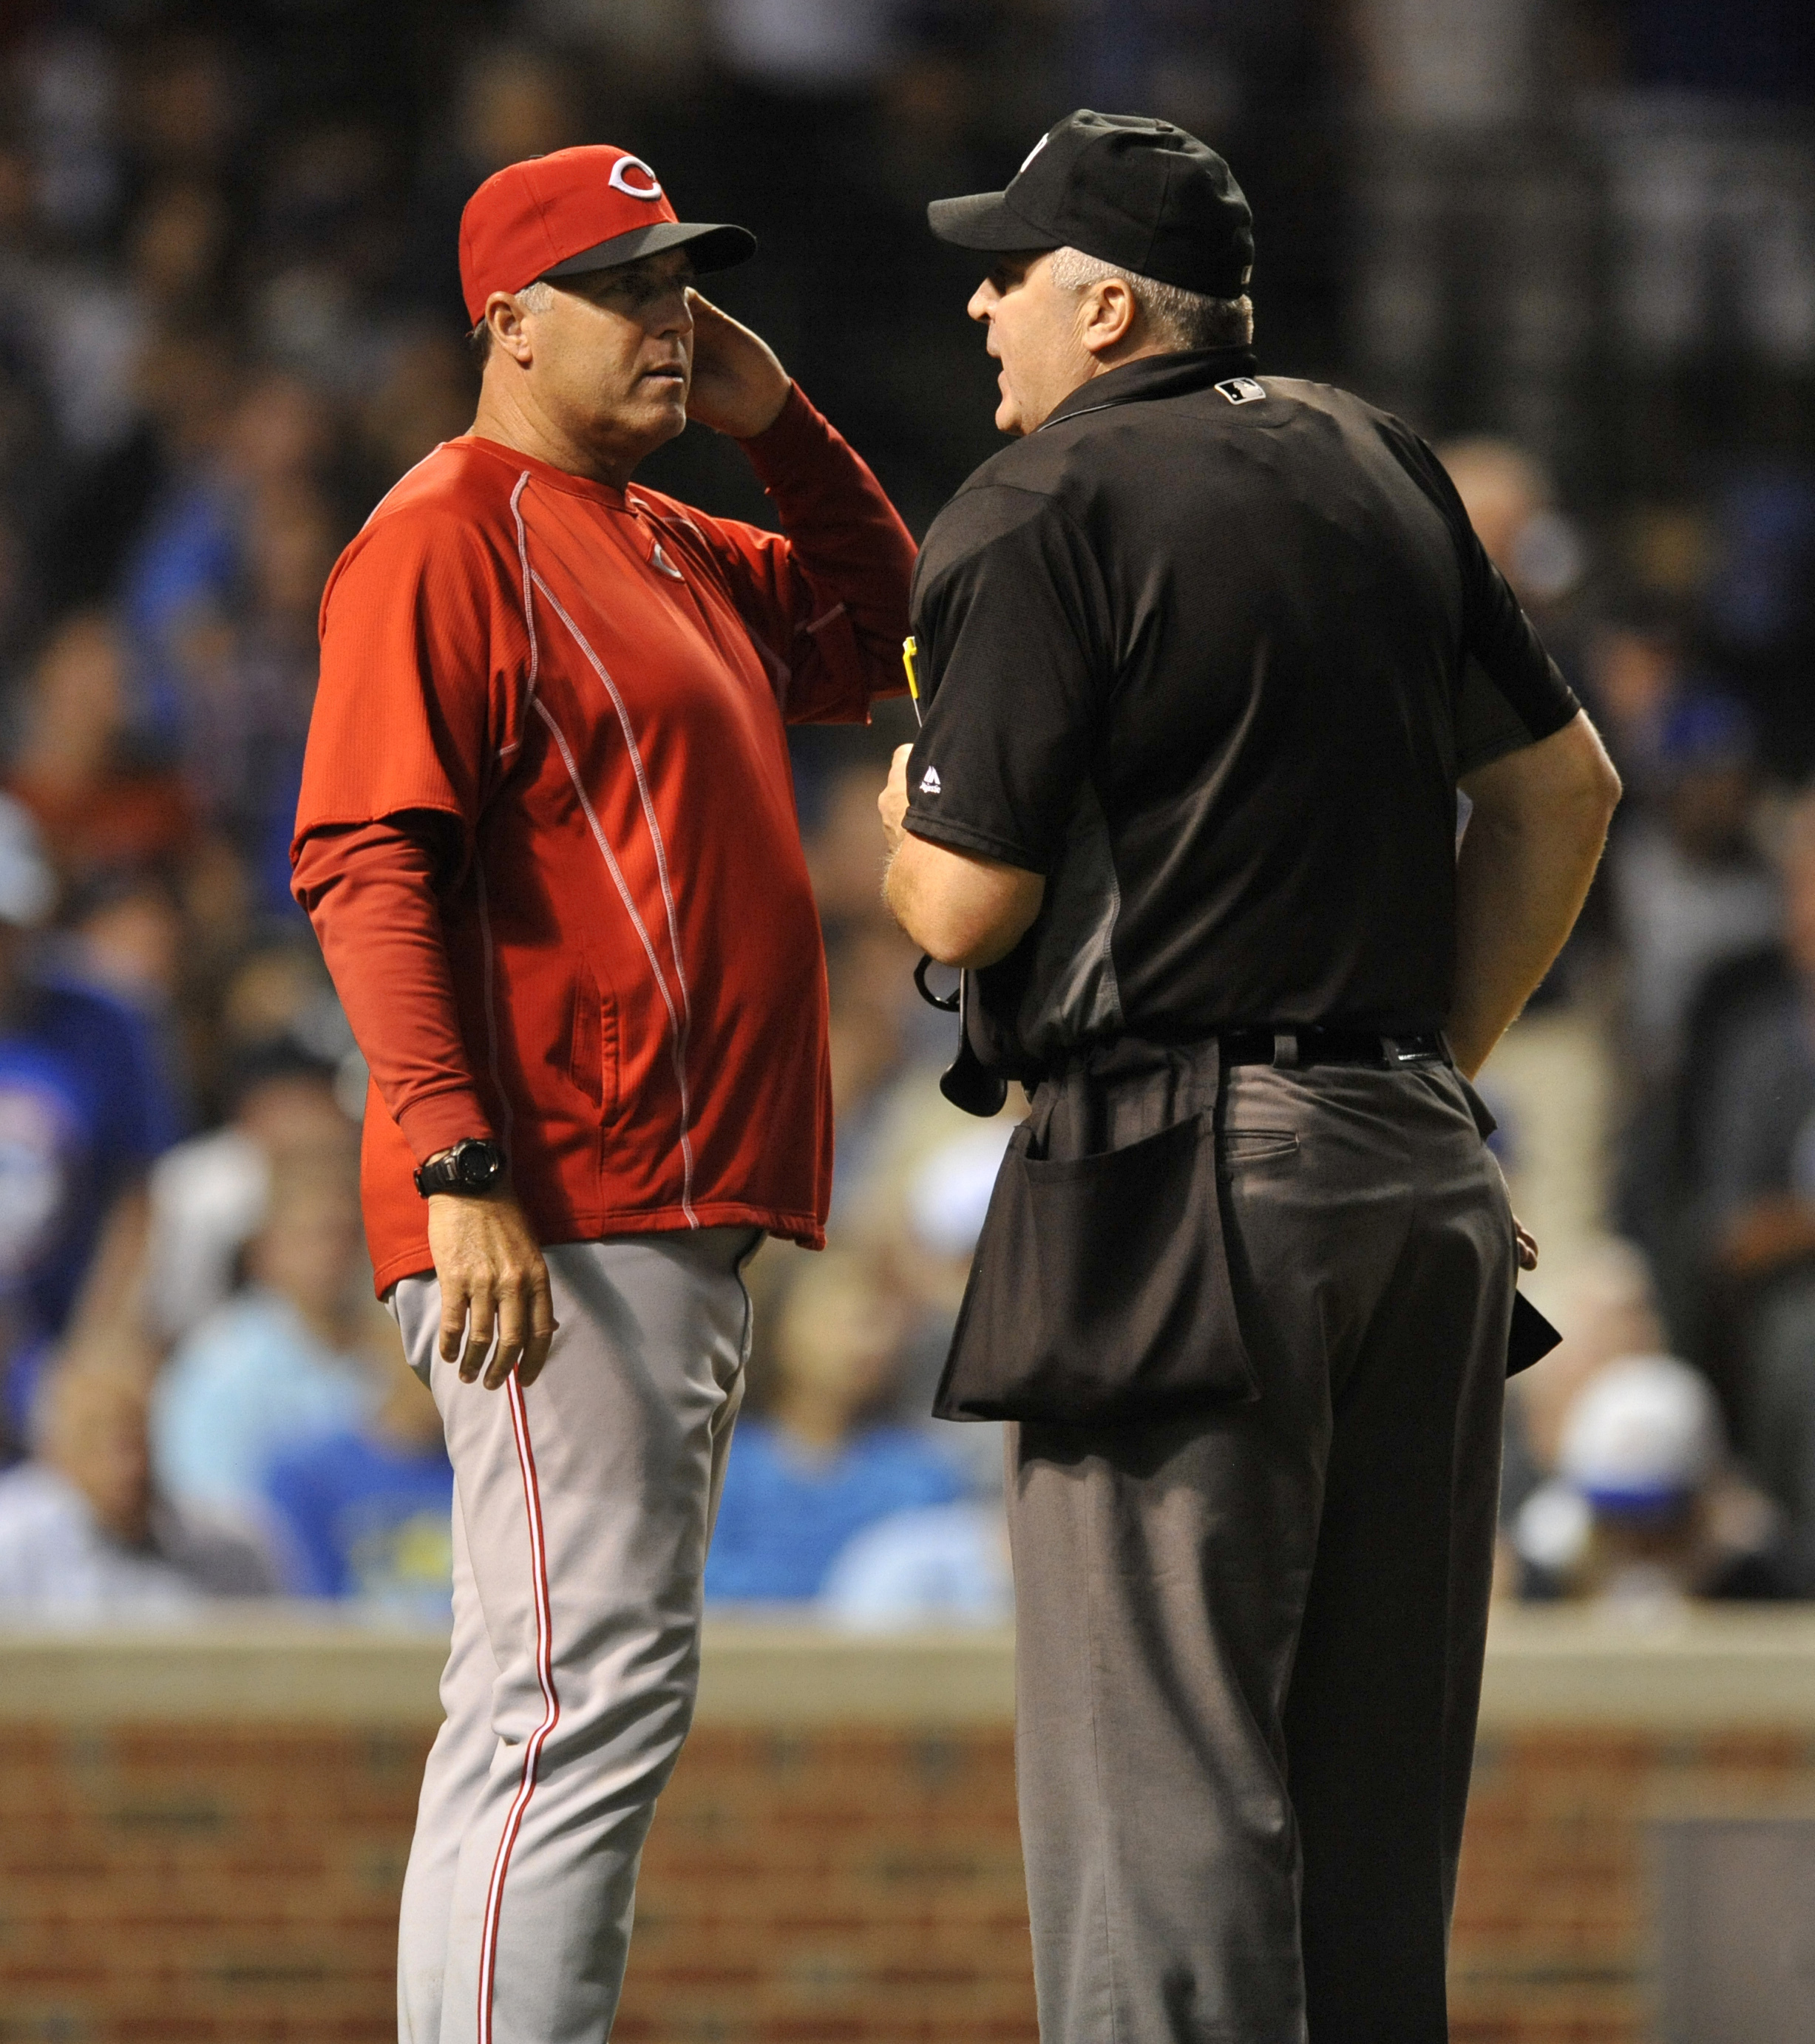 Cincinnati Reds manager Bryan Price left, talks with home plate umpire Bill Welke right, after a balk was called on pitcher Michael Lorenzen during the fifth inning of a baseball game against the Chicago Cubs Wednesday, Sept. 21, 2016, in Chicago. (AP Pho